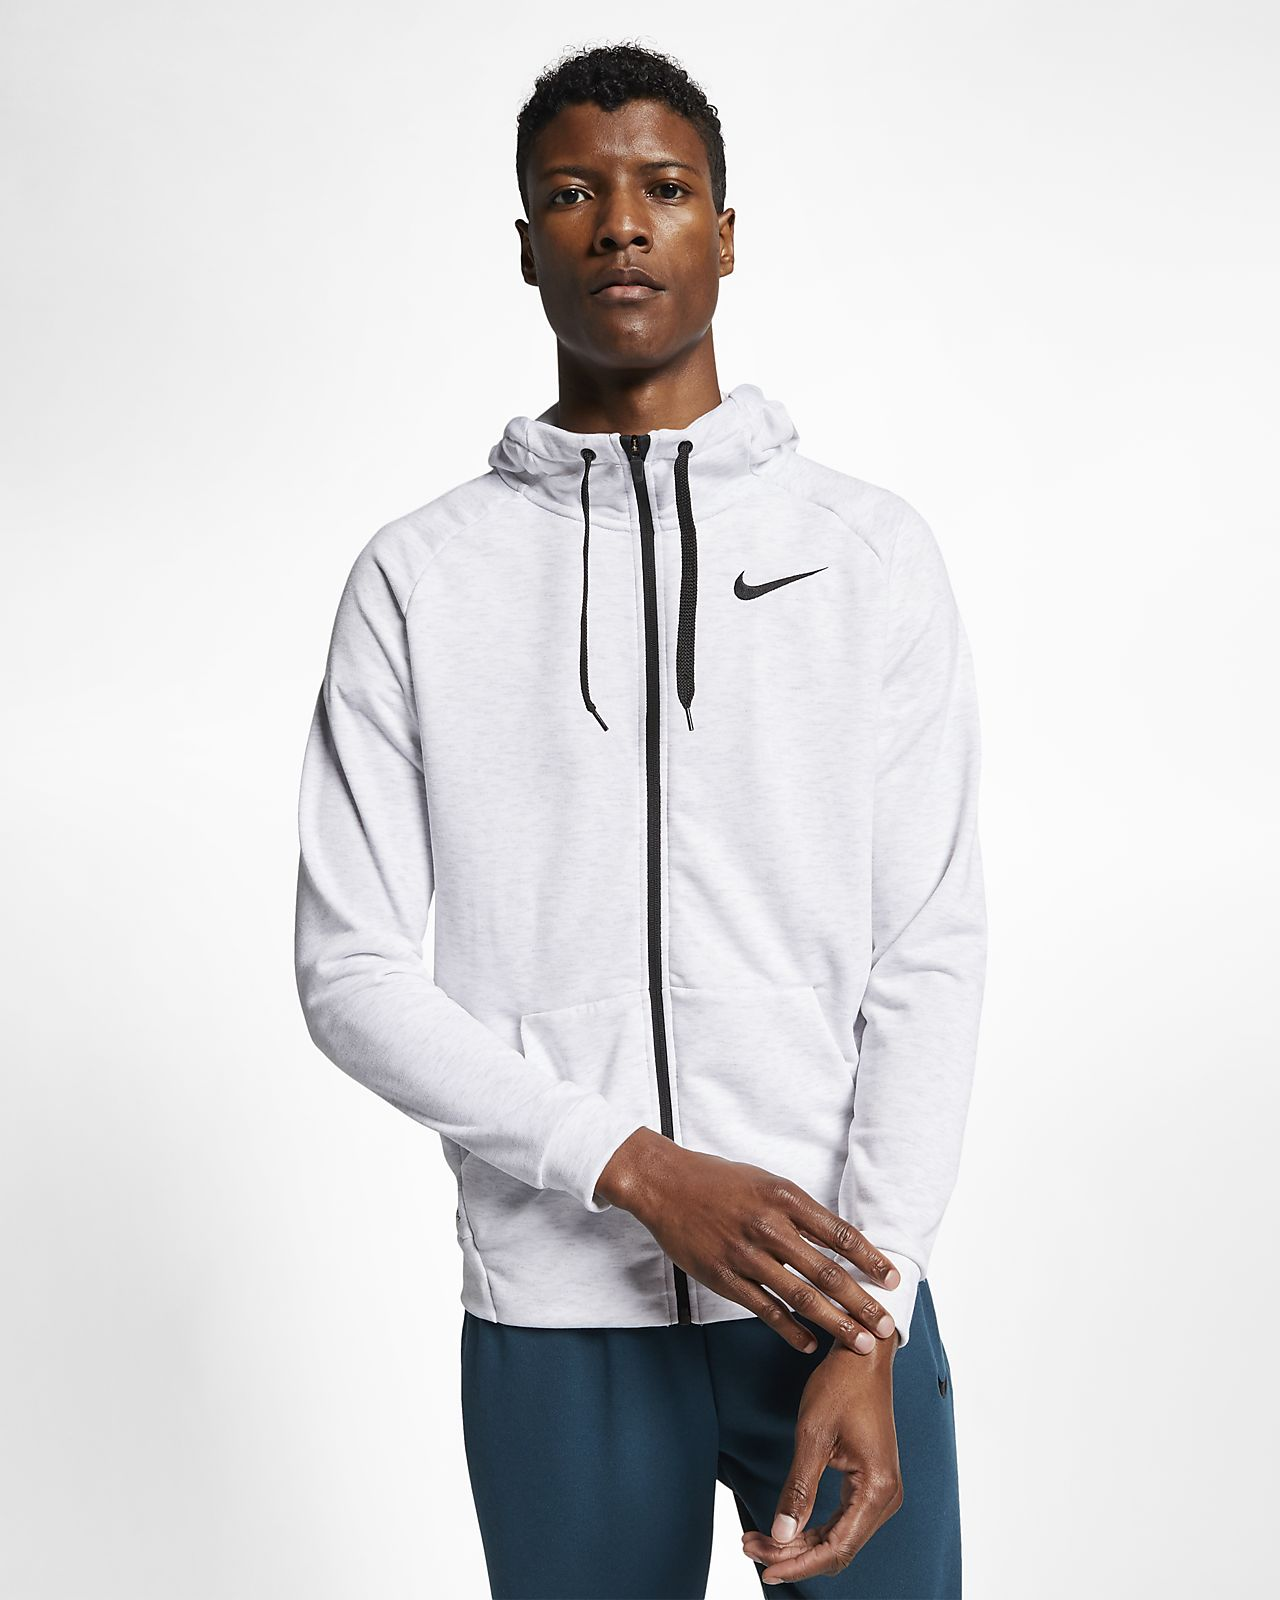 39ef9d29 Nike Dri-FIT Men's Full-Zip Training Hoodie. Nike.com